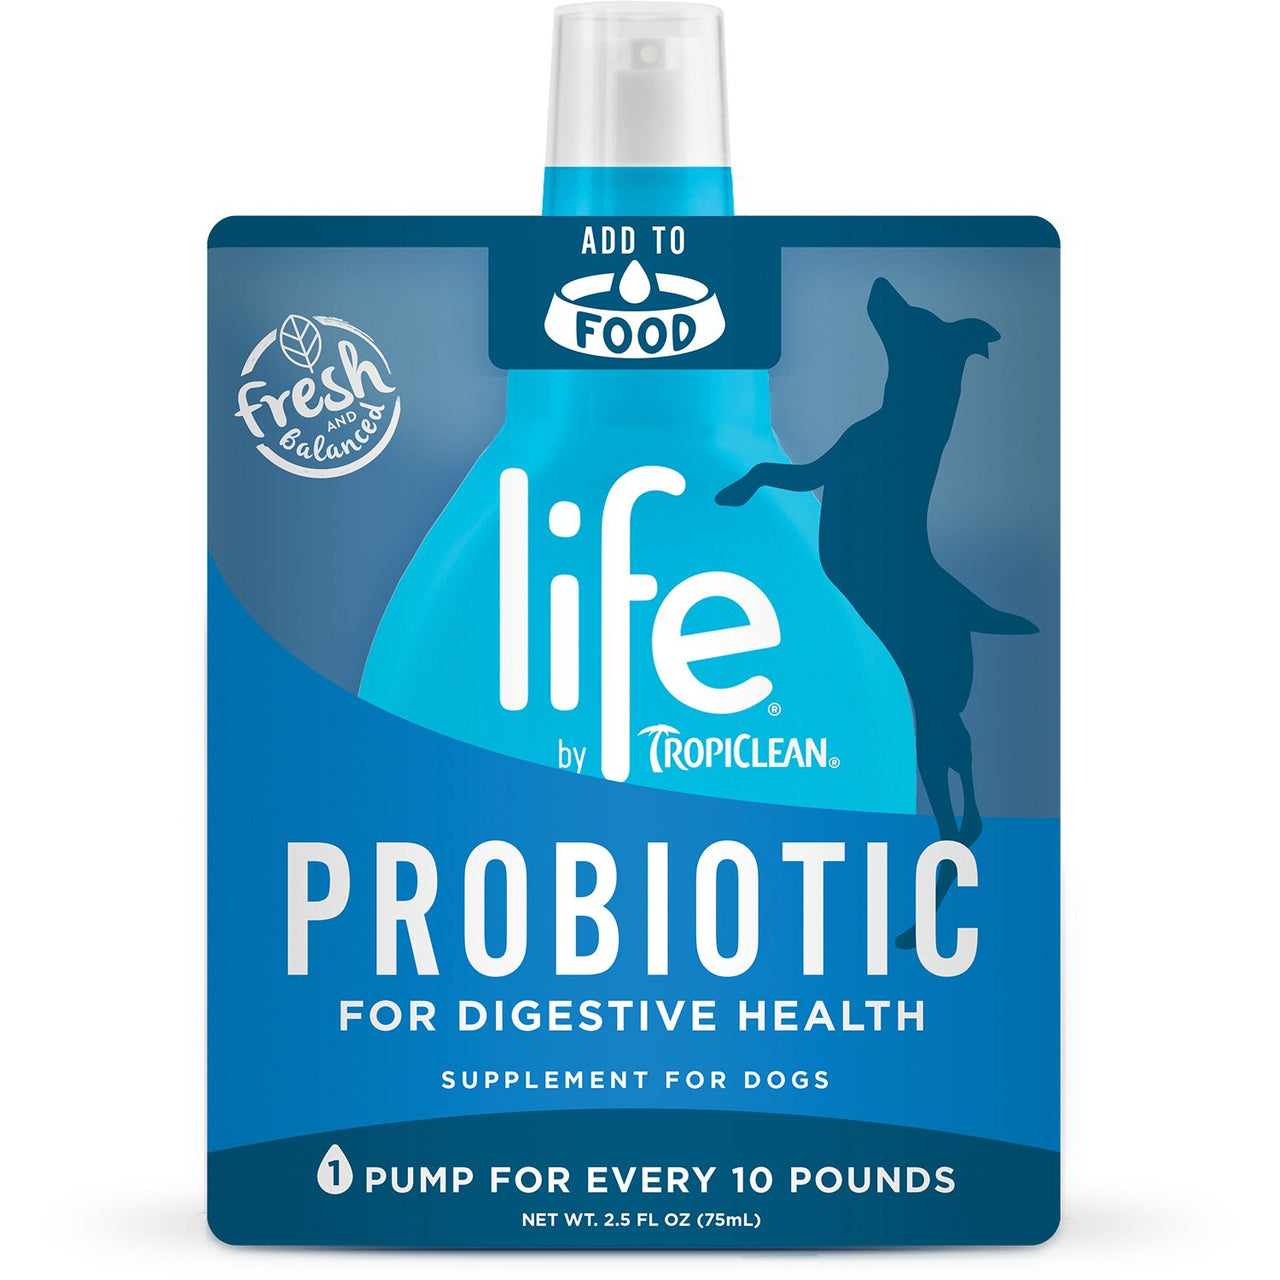 Tropiclean Life Probiotic Dog Supplement